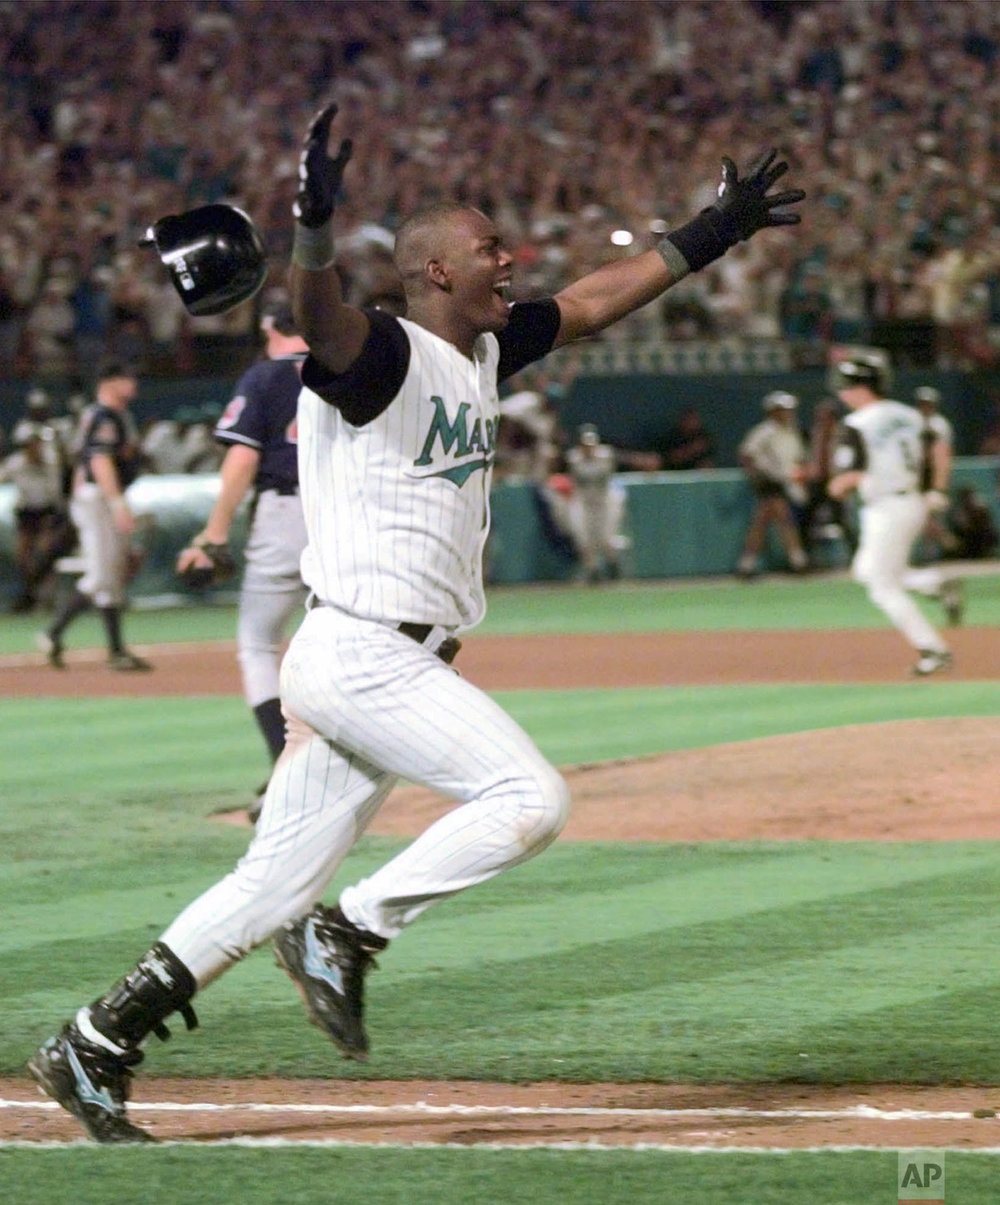 Florida Marlins Edgar Renteria runs down the first base line as his single scores Craig Counsell to win Game 7 and the World Series early Monday morning, Oct. 27, 1997, at Miami's Pro Player Stadium. The Marlins defeated the Cleveland Indians 3-2. (AP Photo/Hans Deryk)